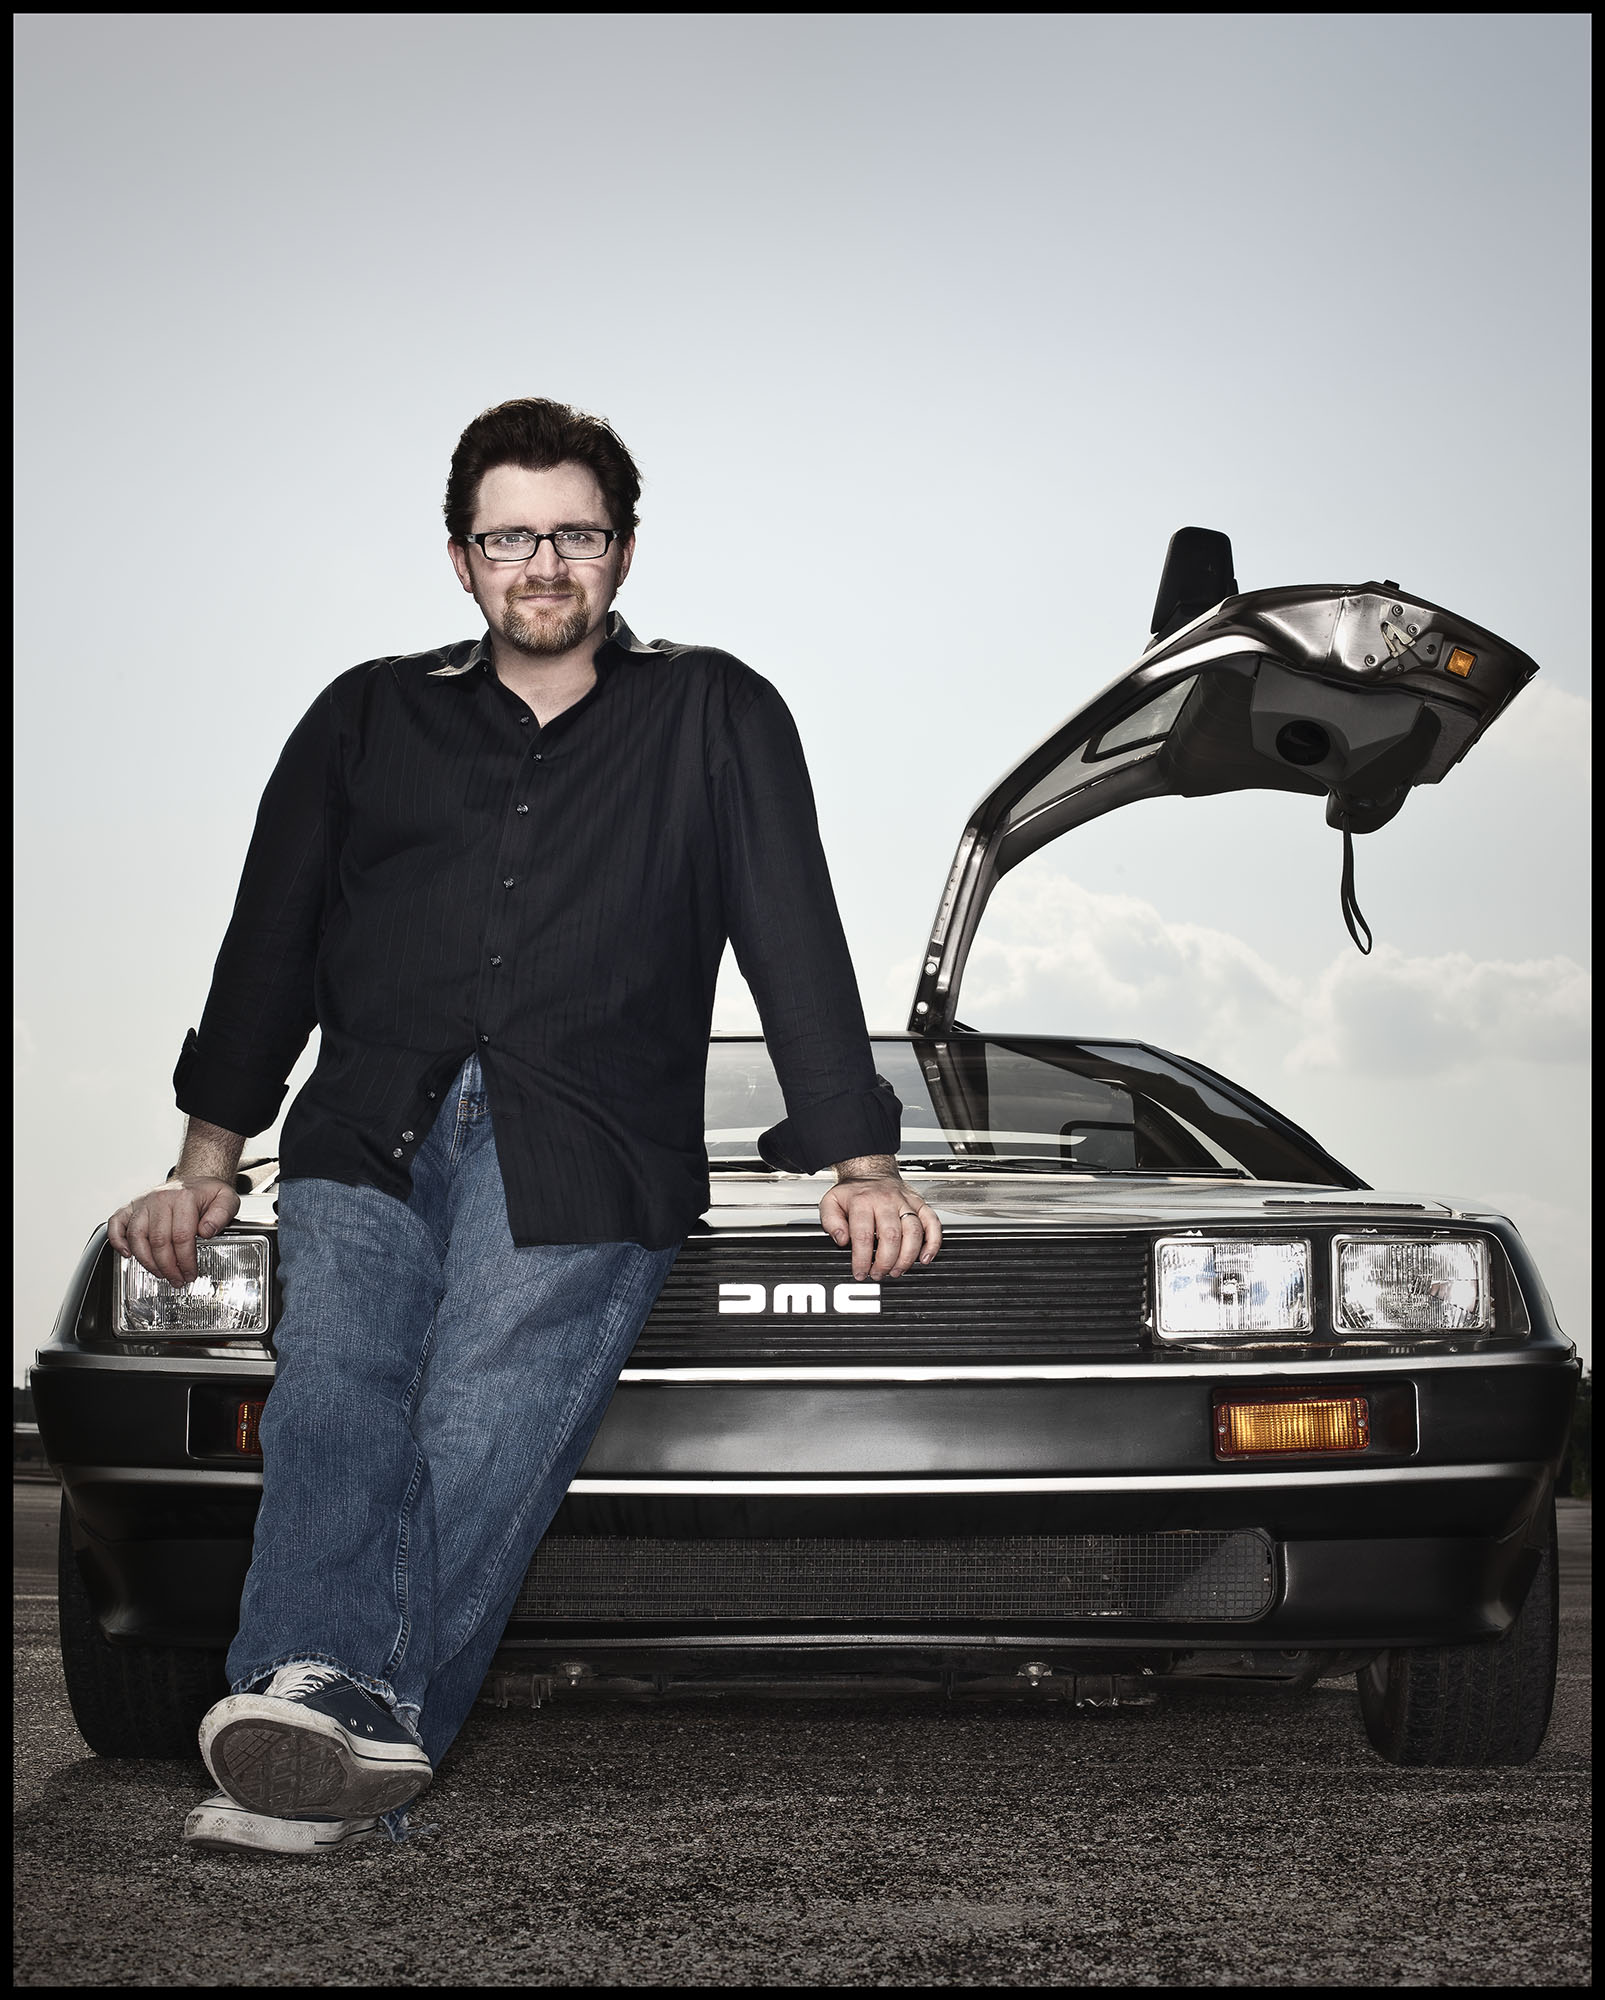 Ernest Cline & his Delorien